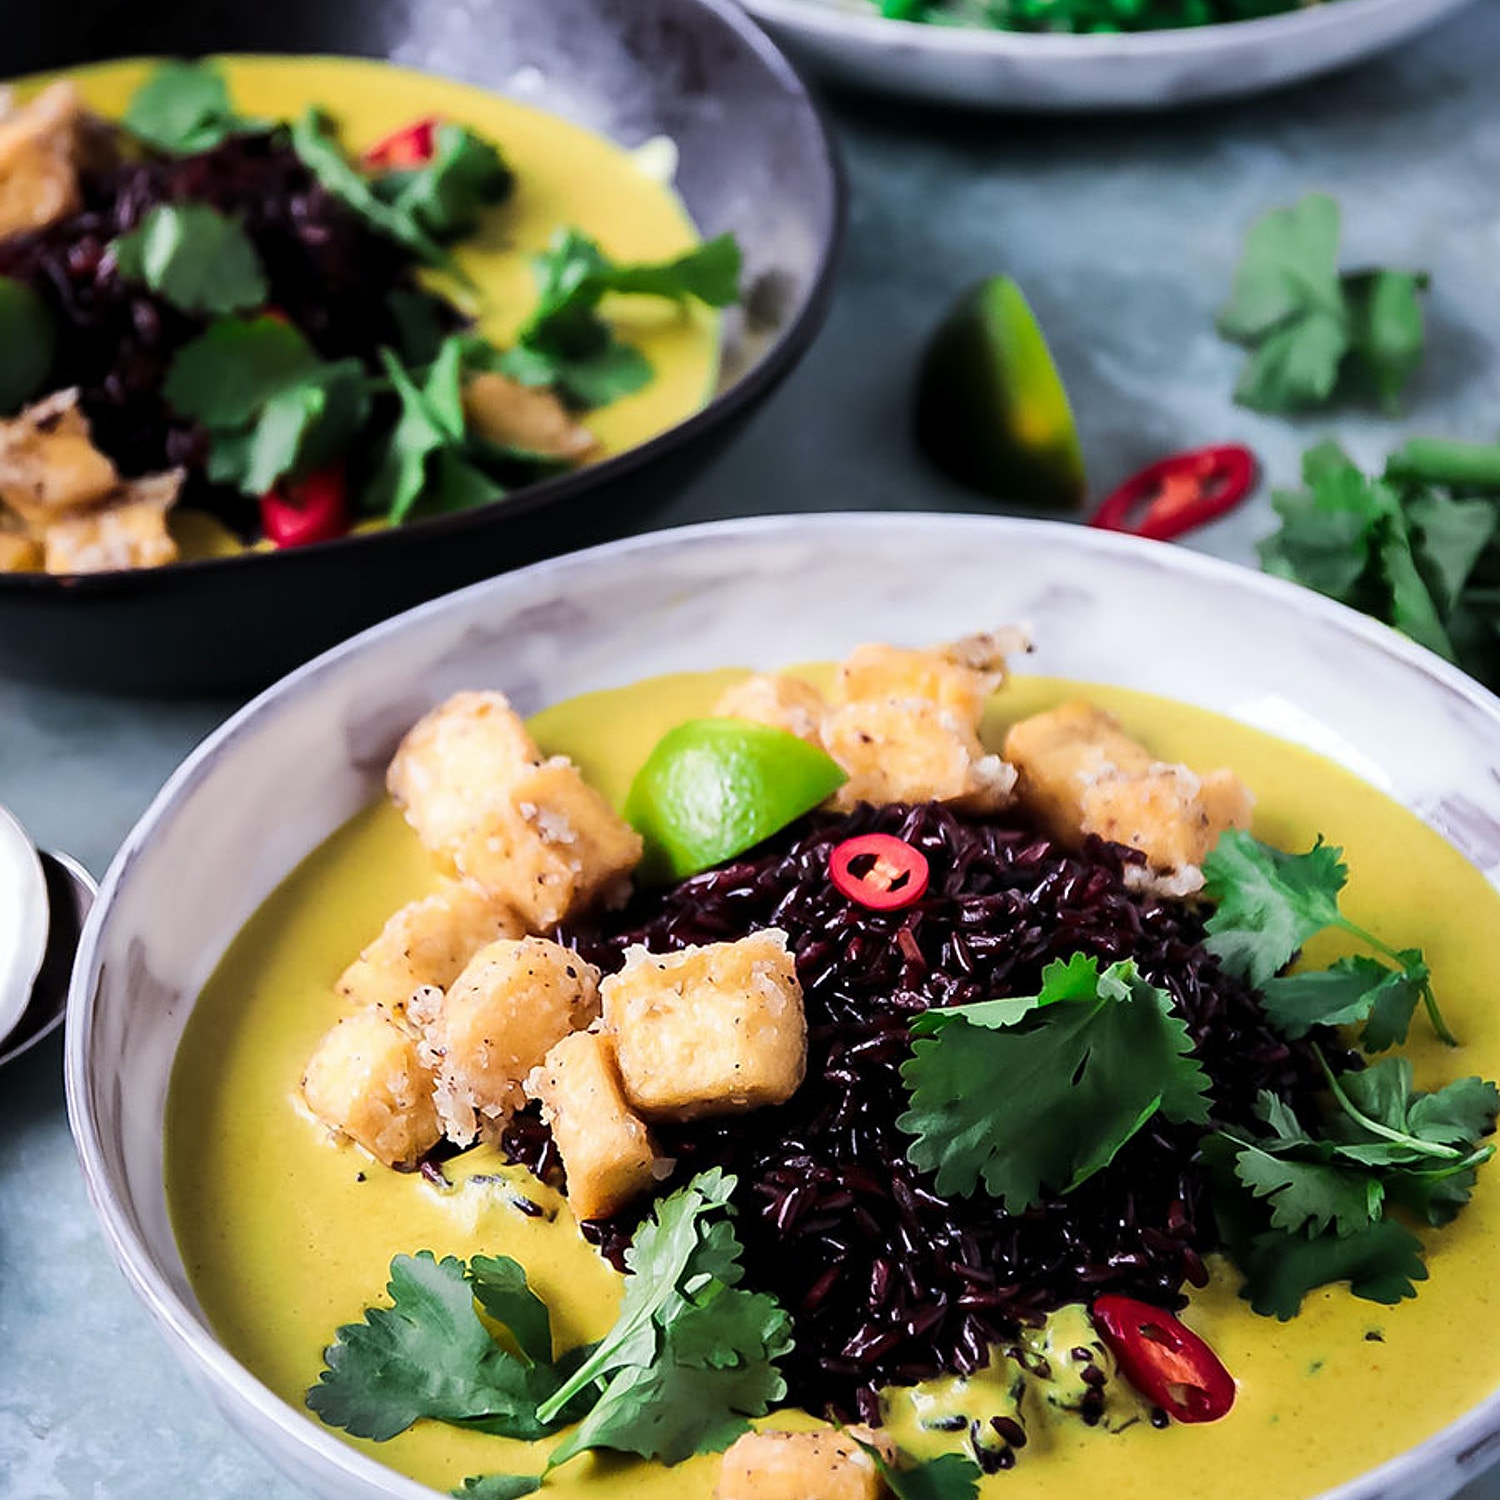 Fragrant Curry Bowls with salt and pepper Tofu and Black rice